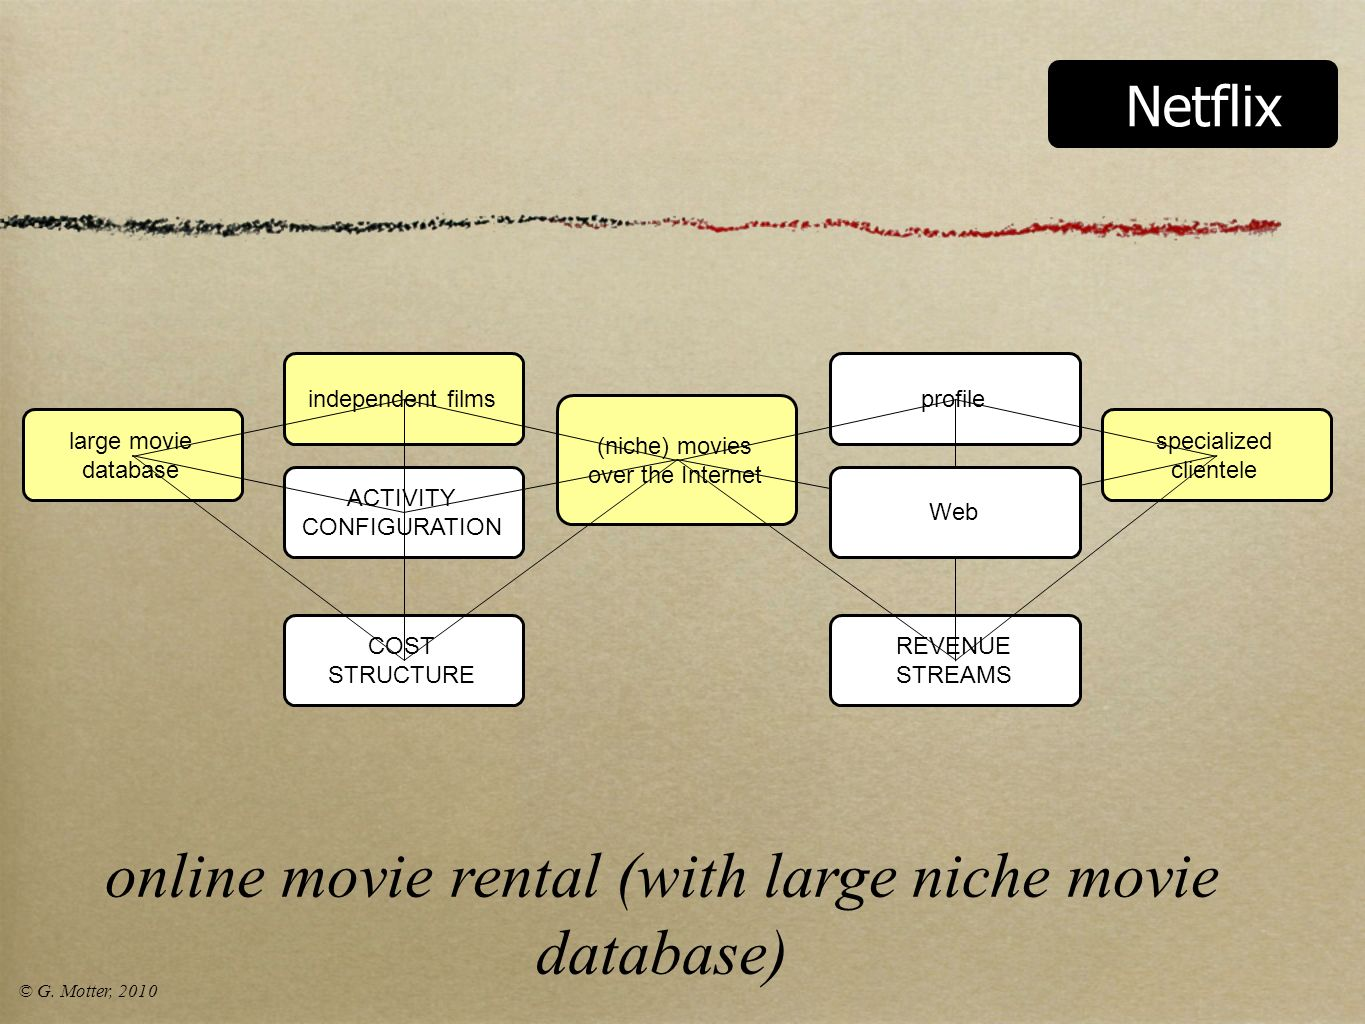 online movie rental (with large niche movie database)